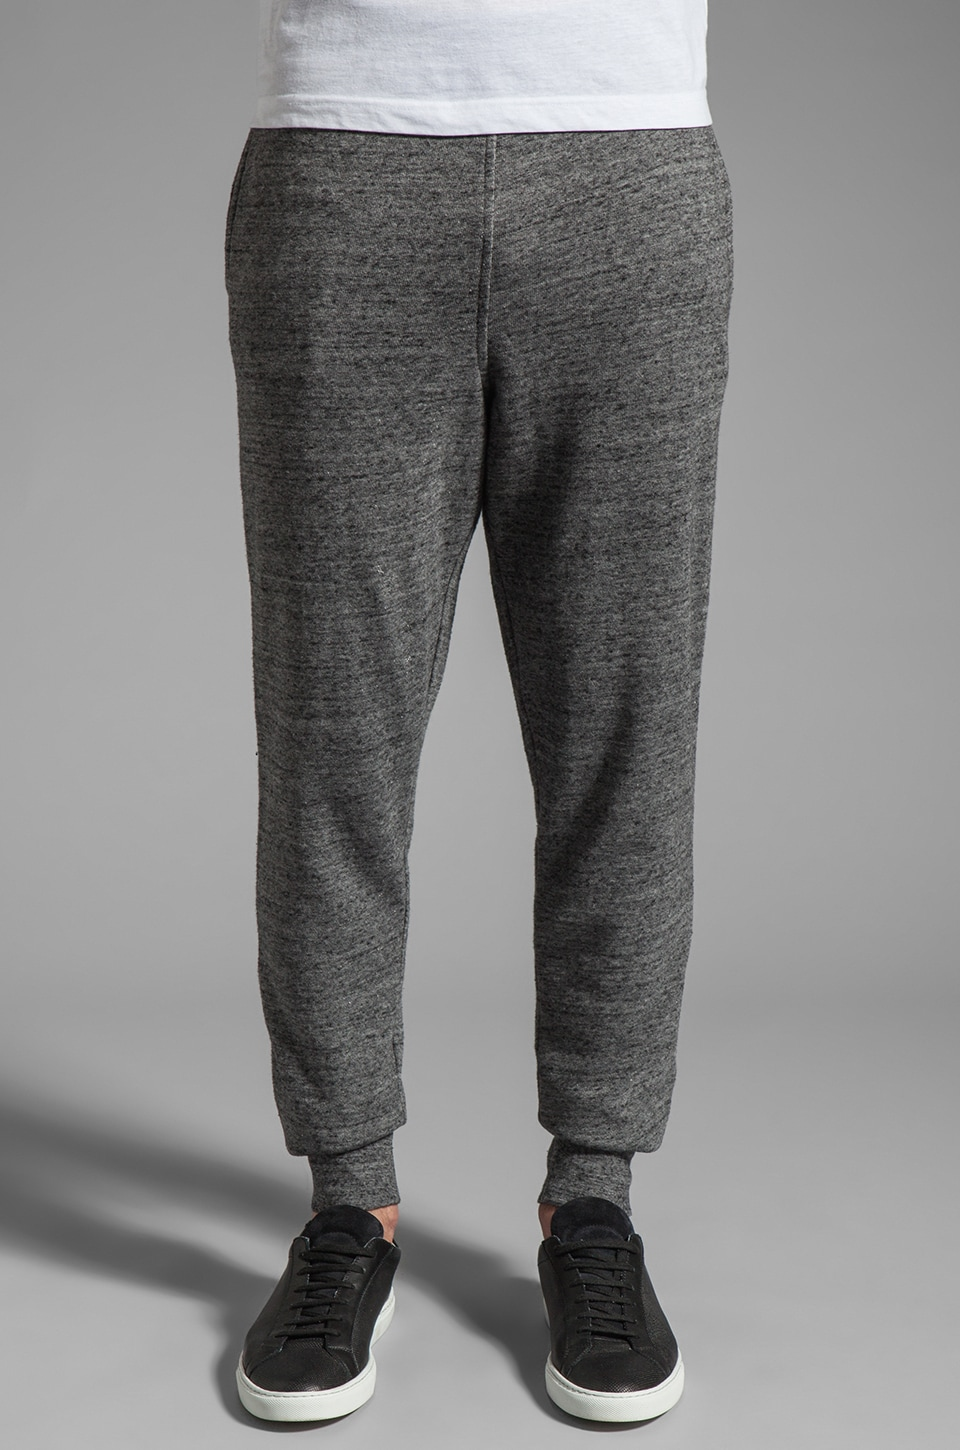 T by Alexander Wang French Terry Sweatpants in Charcoal